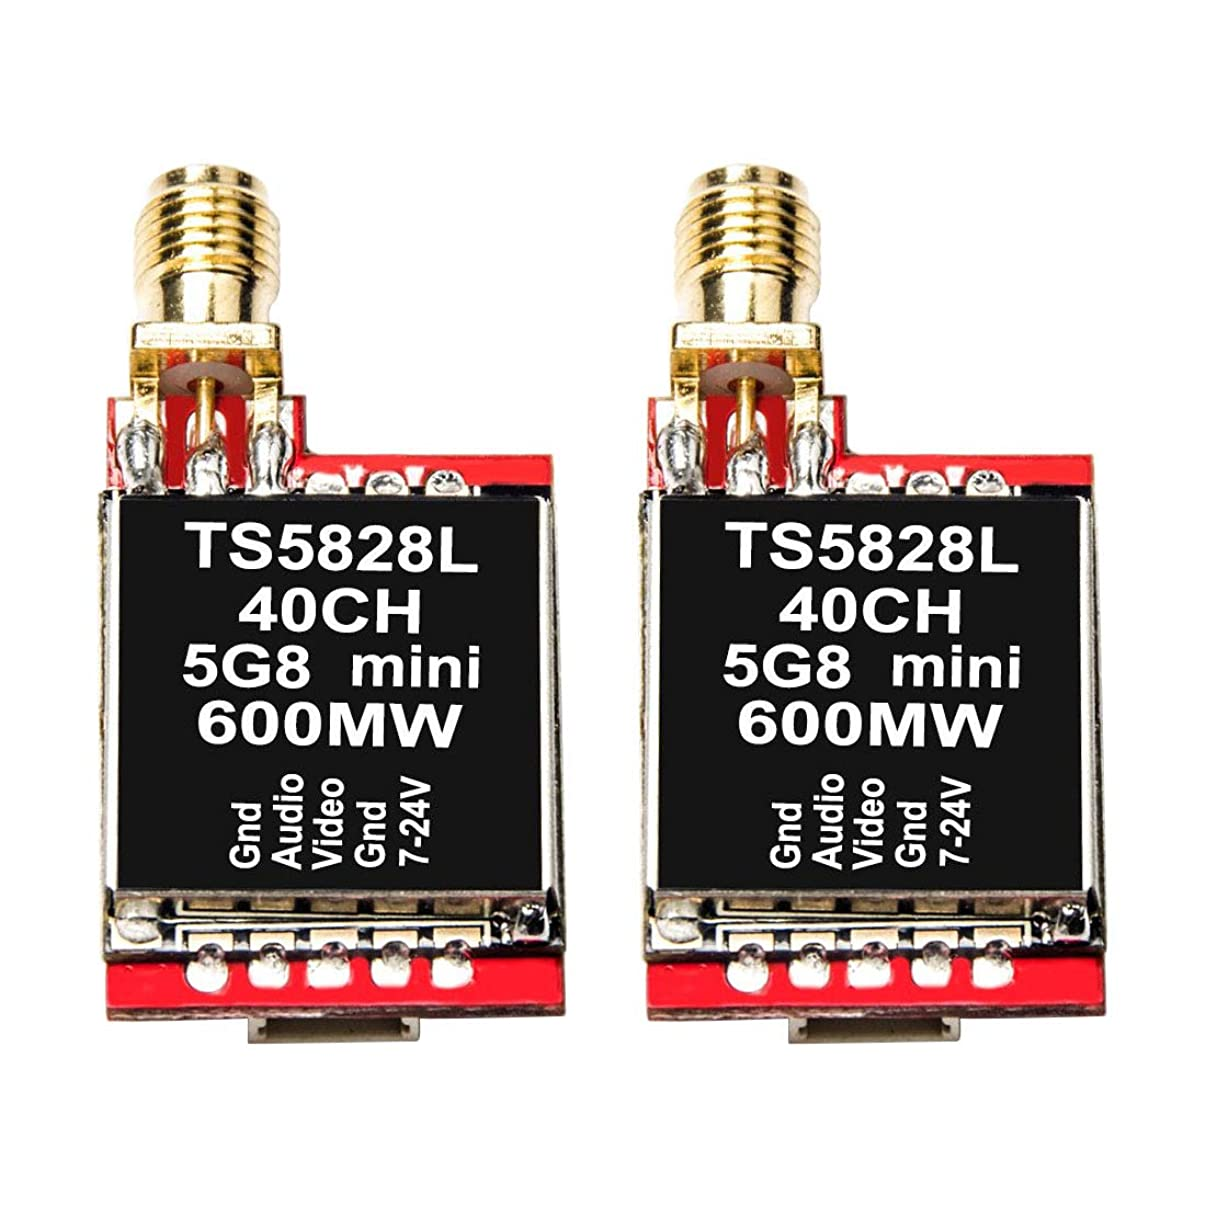 Wolfwhoop FPV 5.8G 600MW WT5828L Mini Wireless Video Transmitter for Drone - 2pcs